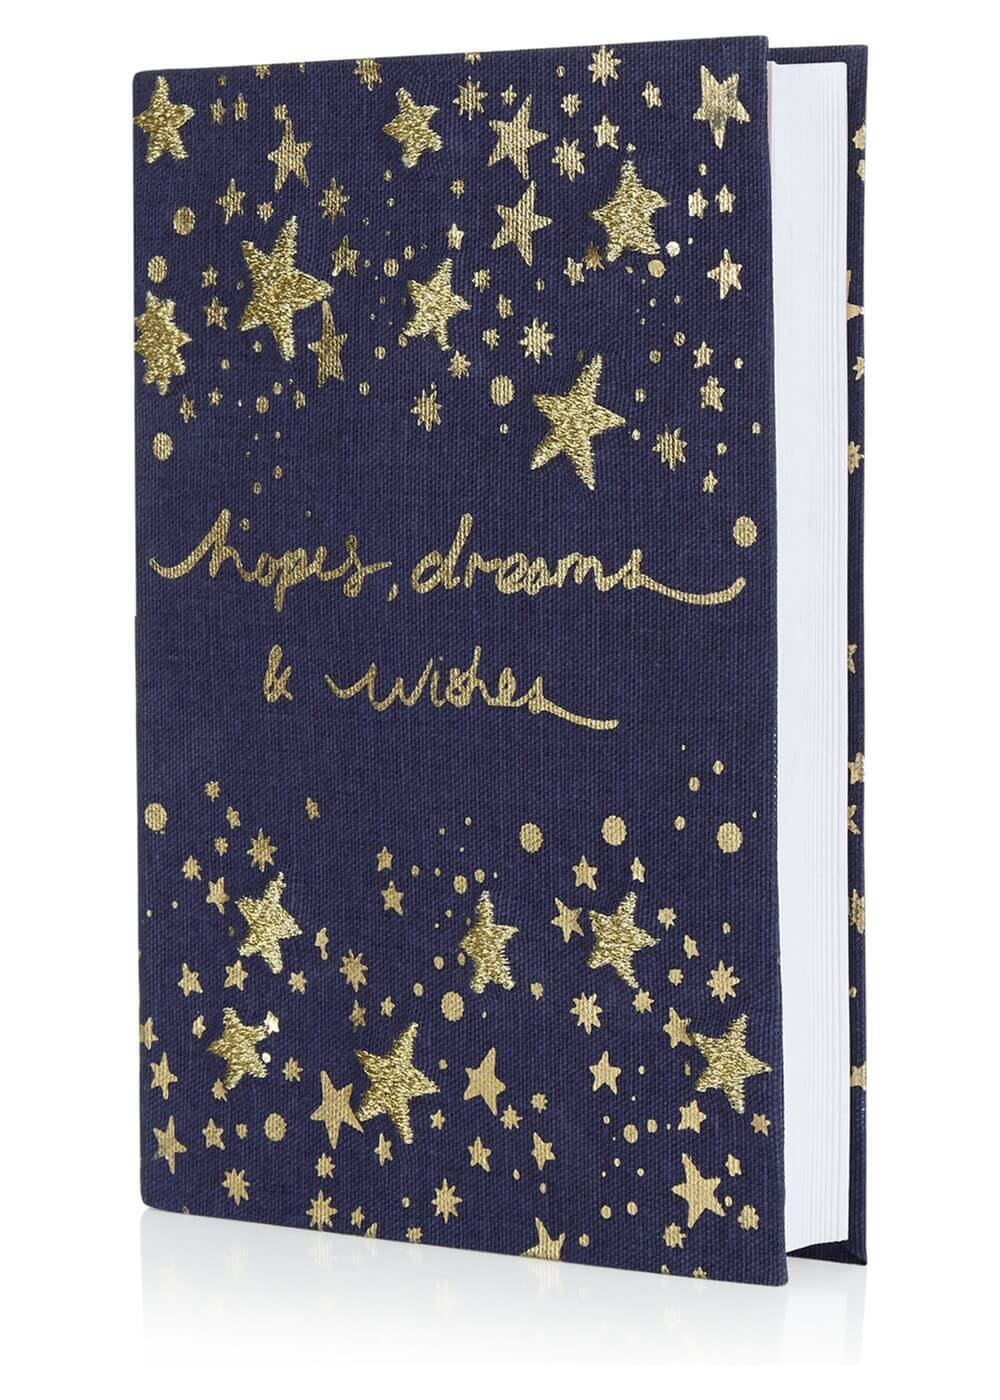 Hopes Dreams Wishes notebook